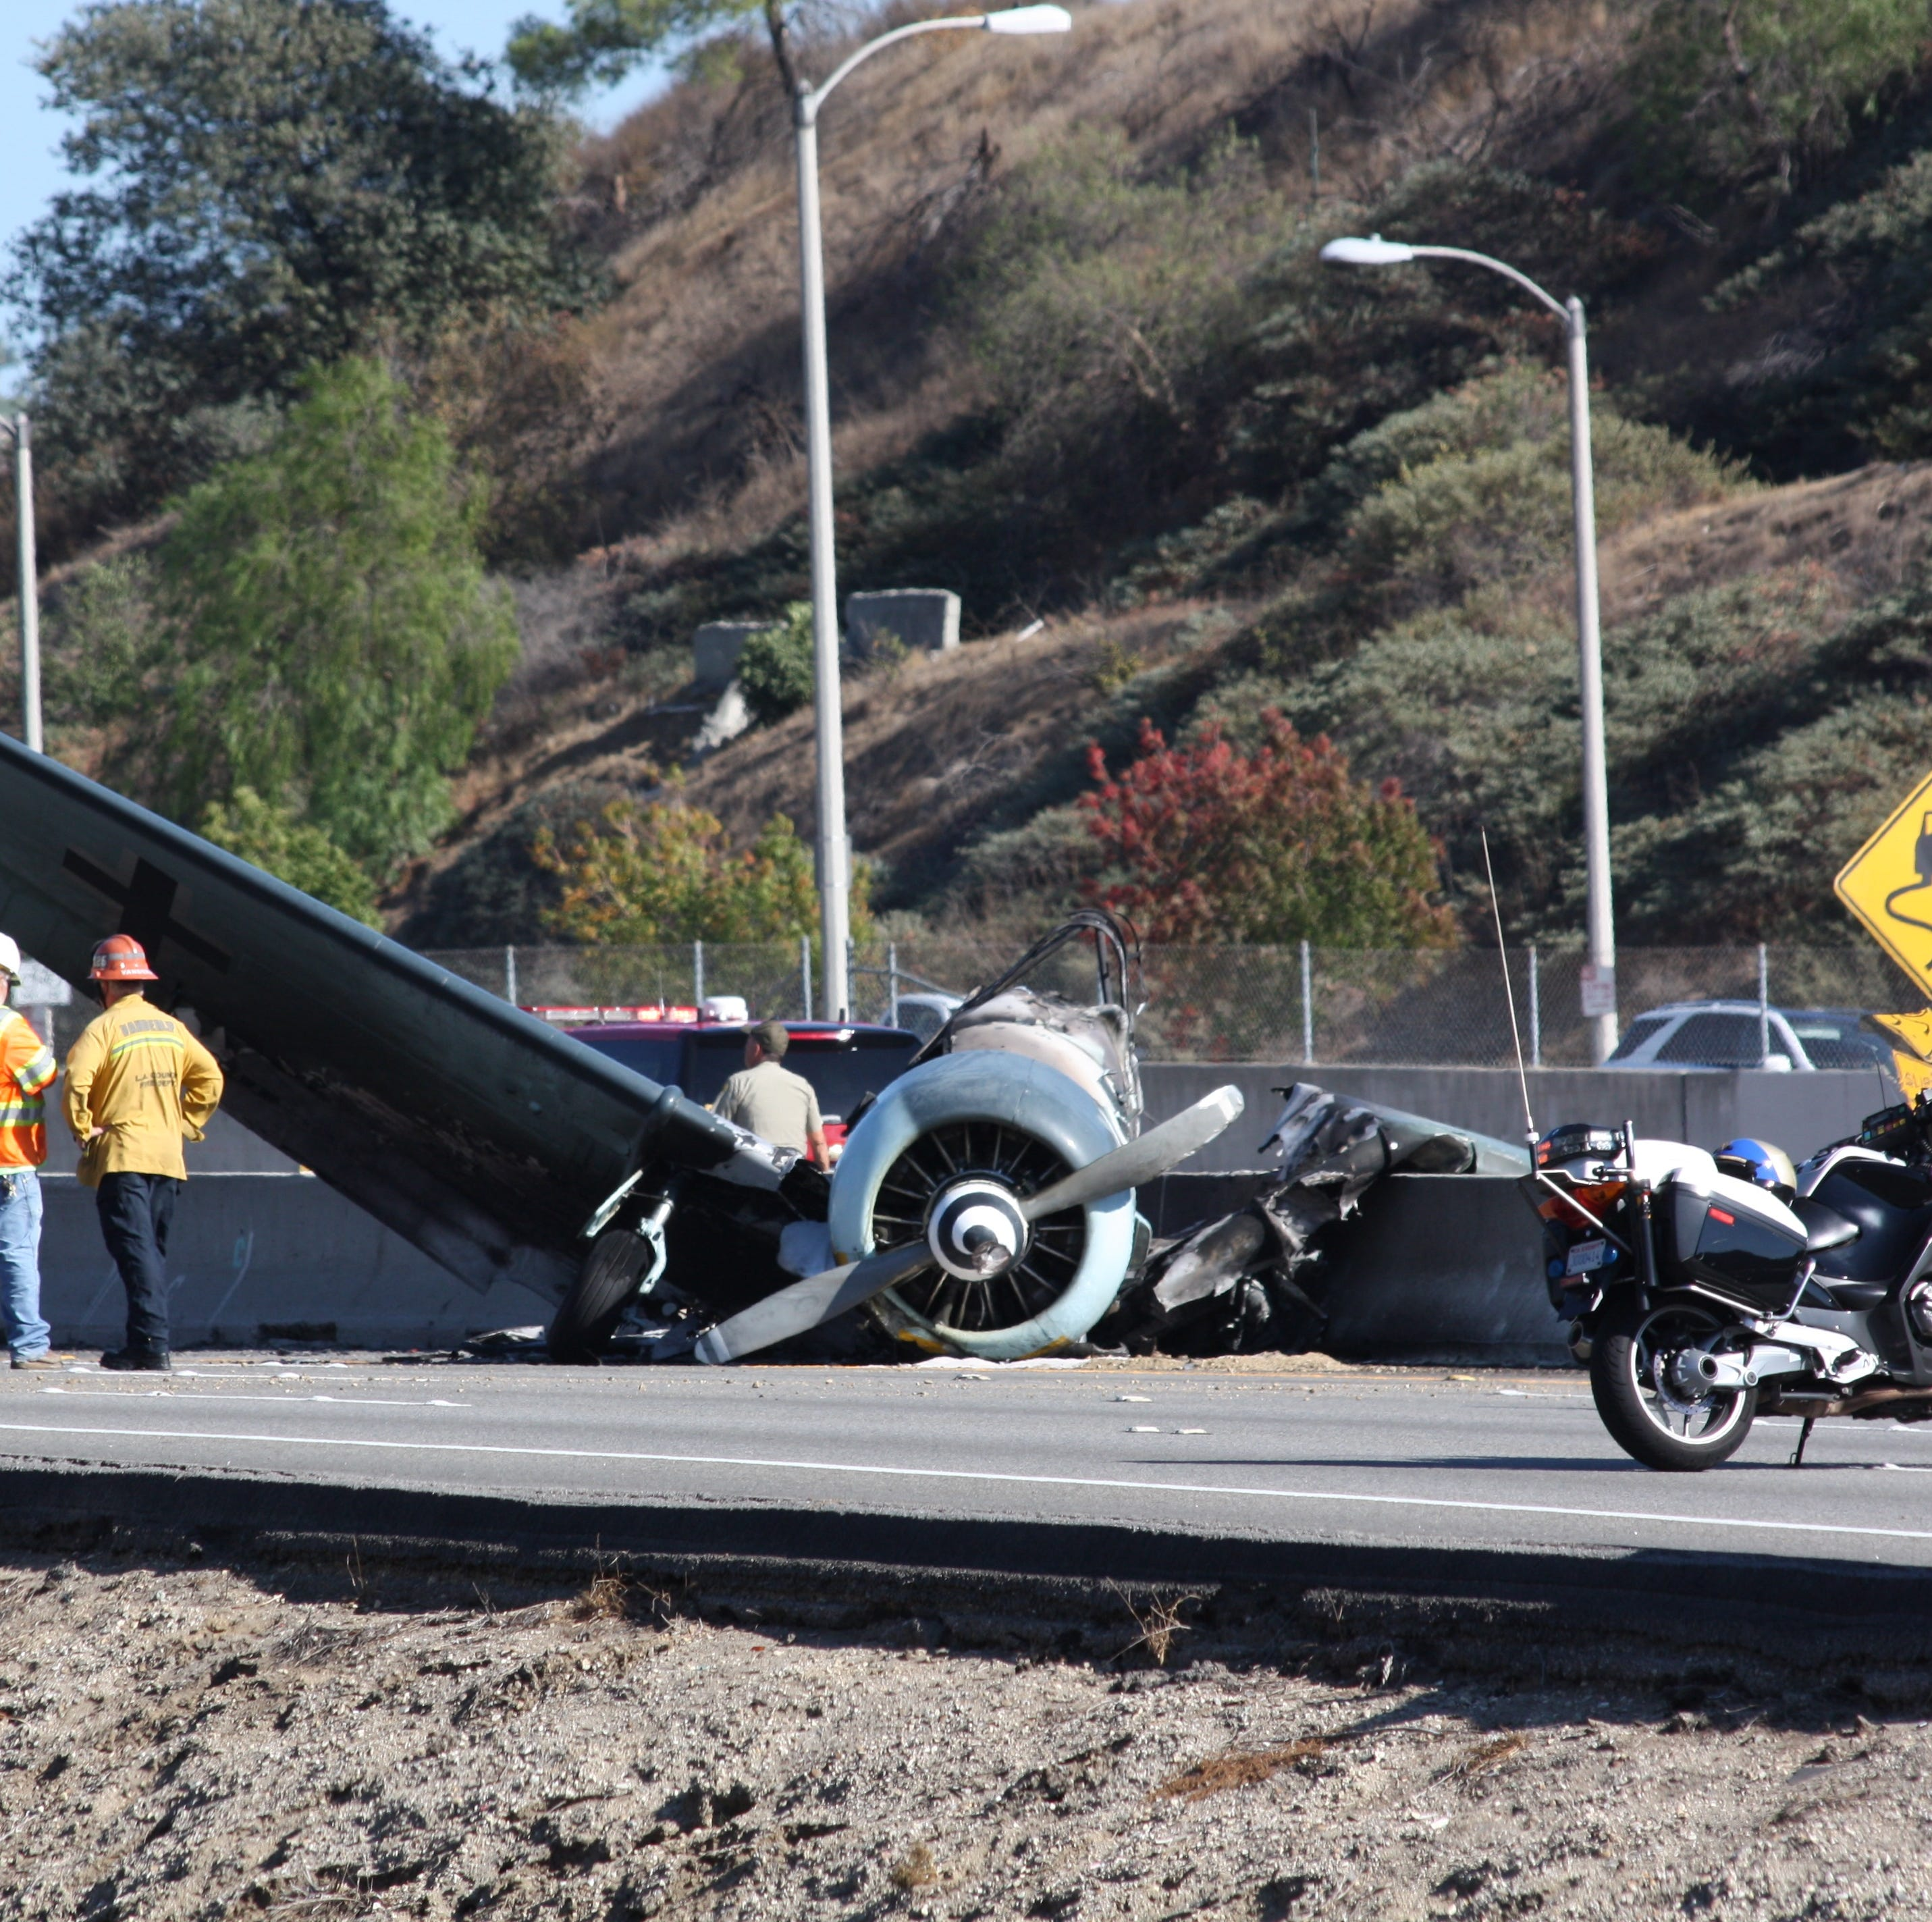 Plane crash lands on Highway 101 near Agoura bringing traffic to a standstill